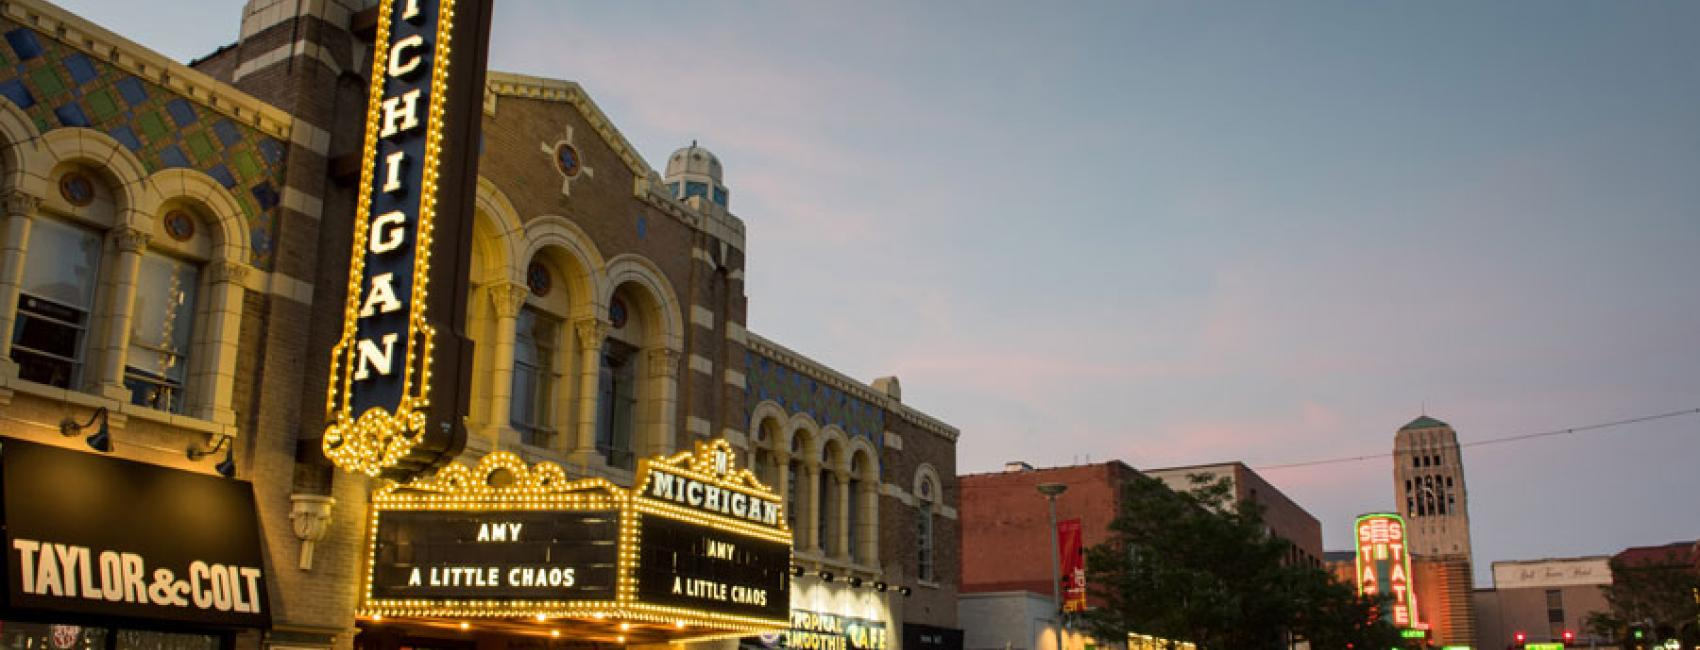 The Michigan Theater in downtown Ann Arbor